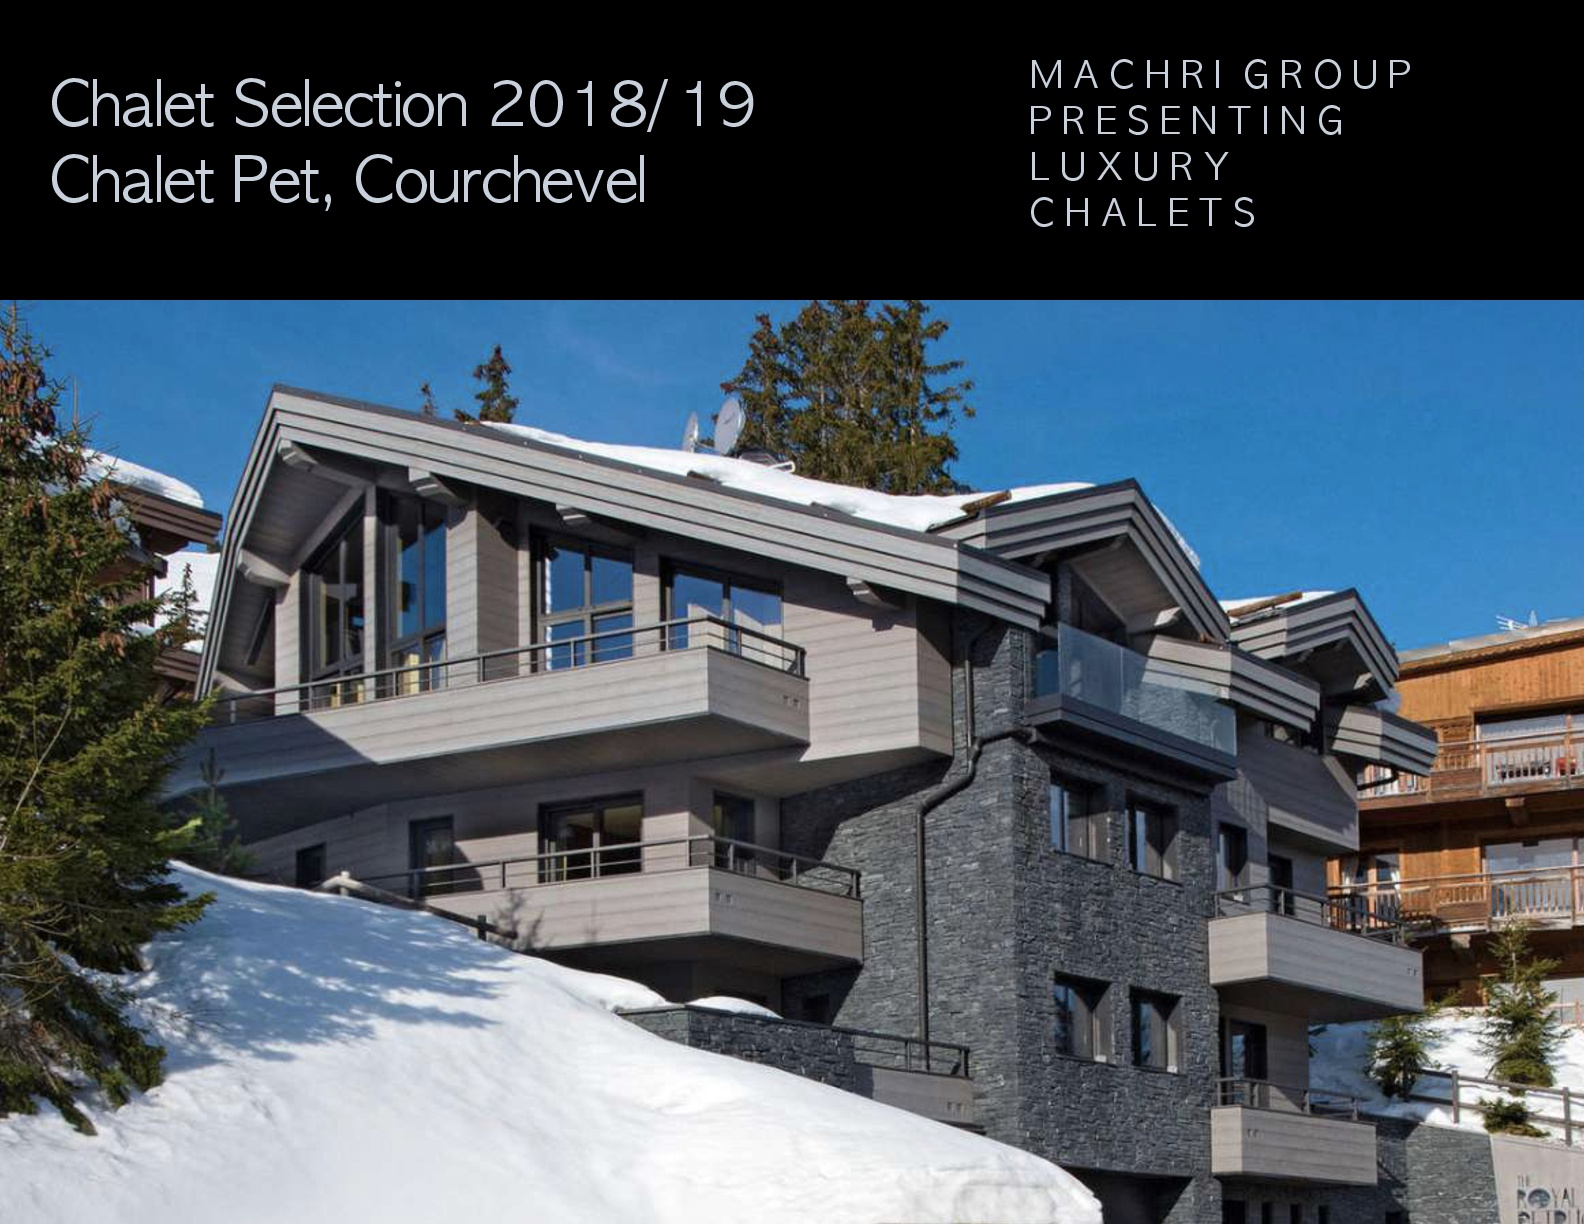 Chalet-Pet,-Courchevel-ilovepdf-compressed-001